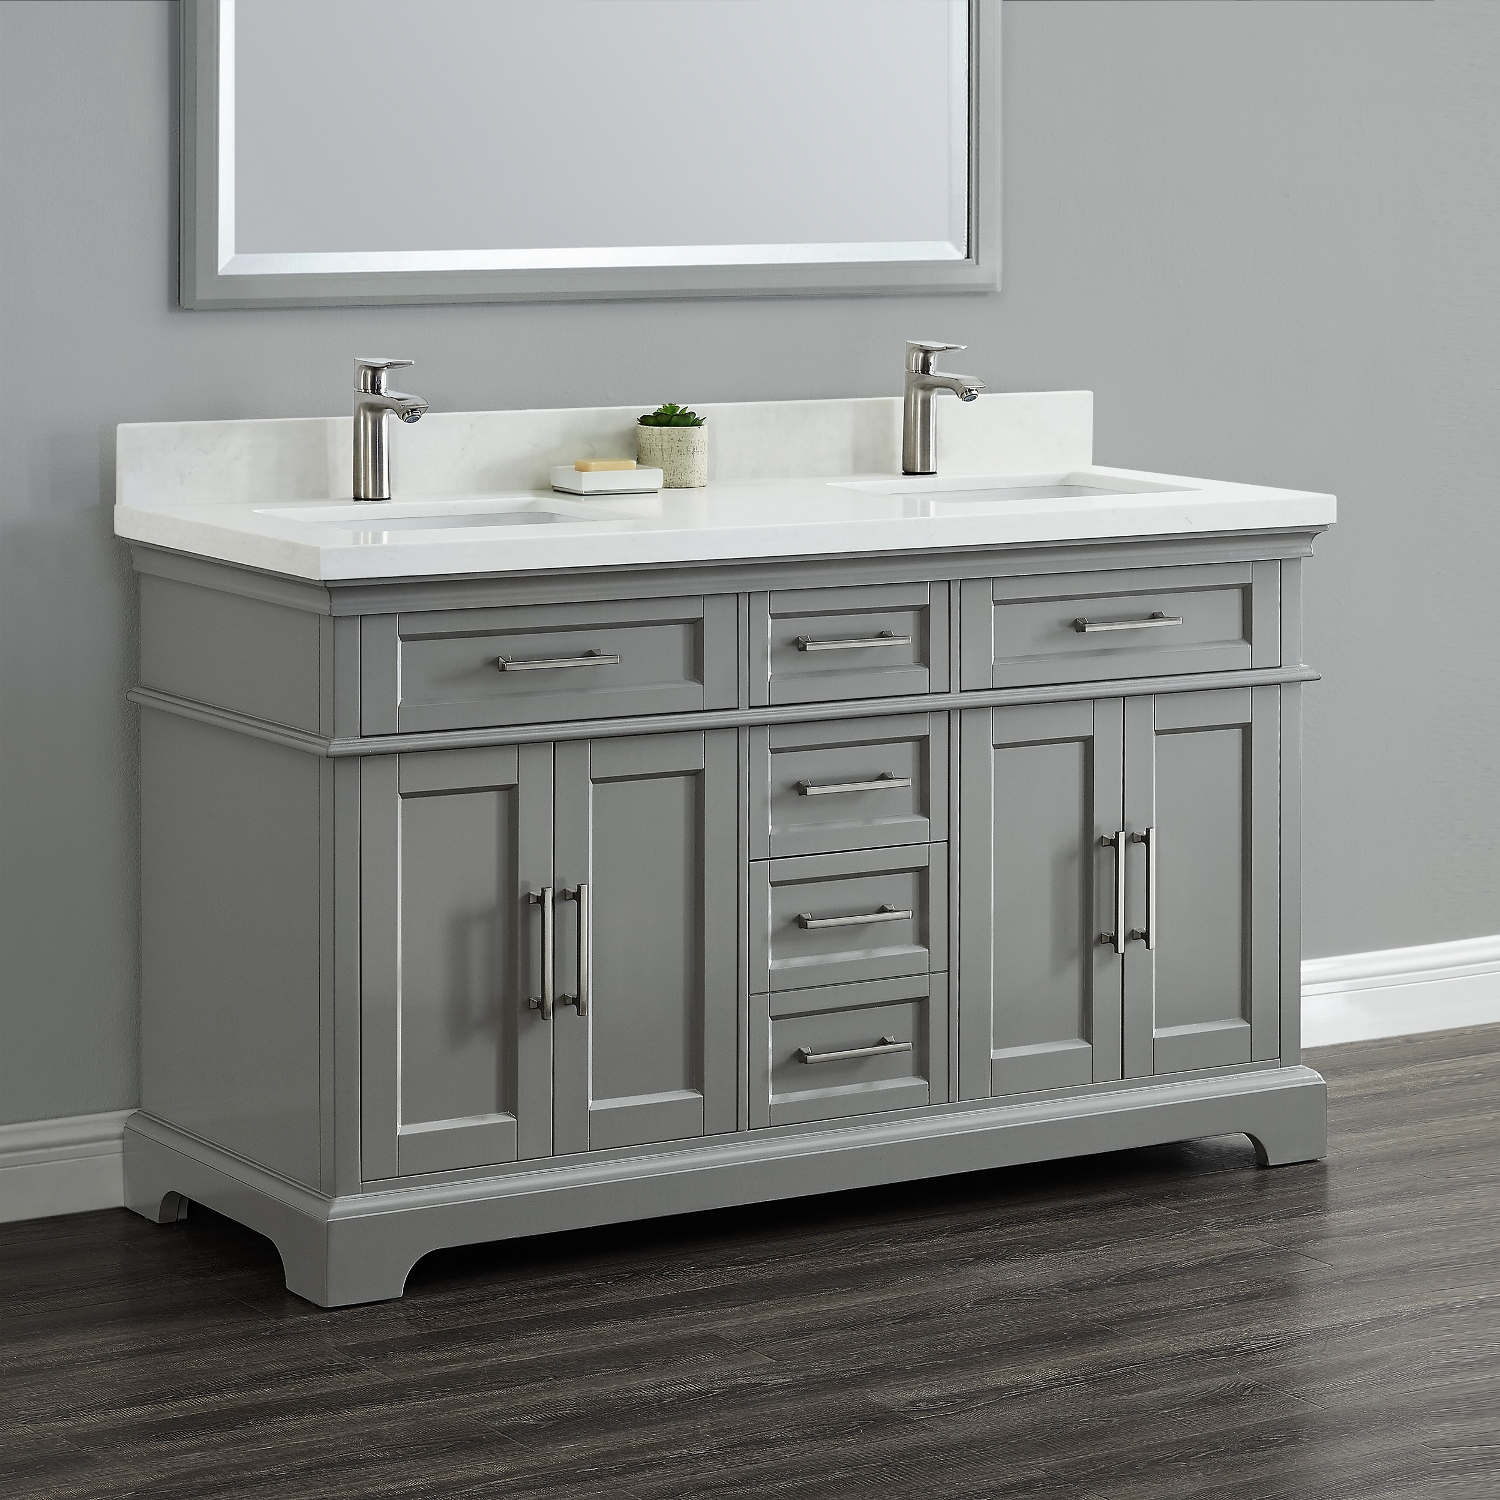 Cameron 60 double sink vanity mission hills furniture for Pictures of bathrooms with double sinks